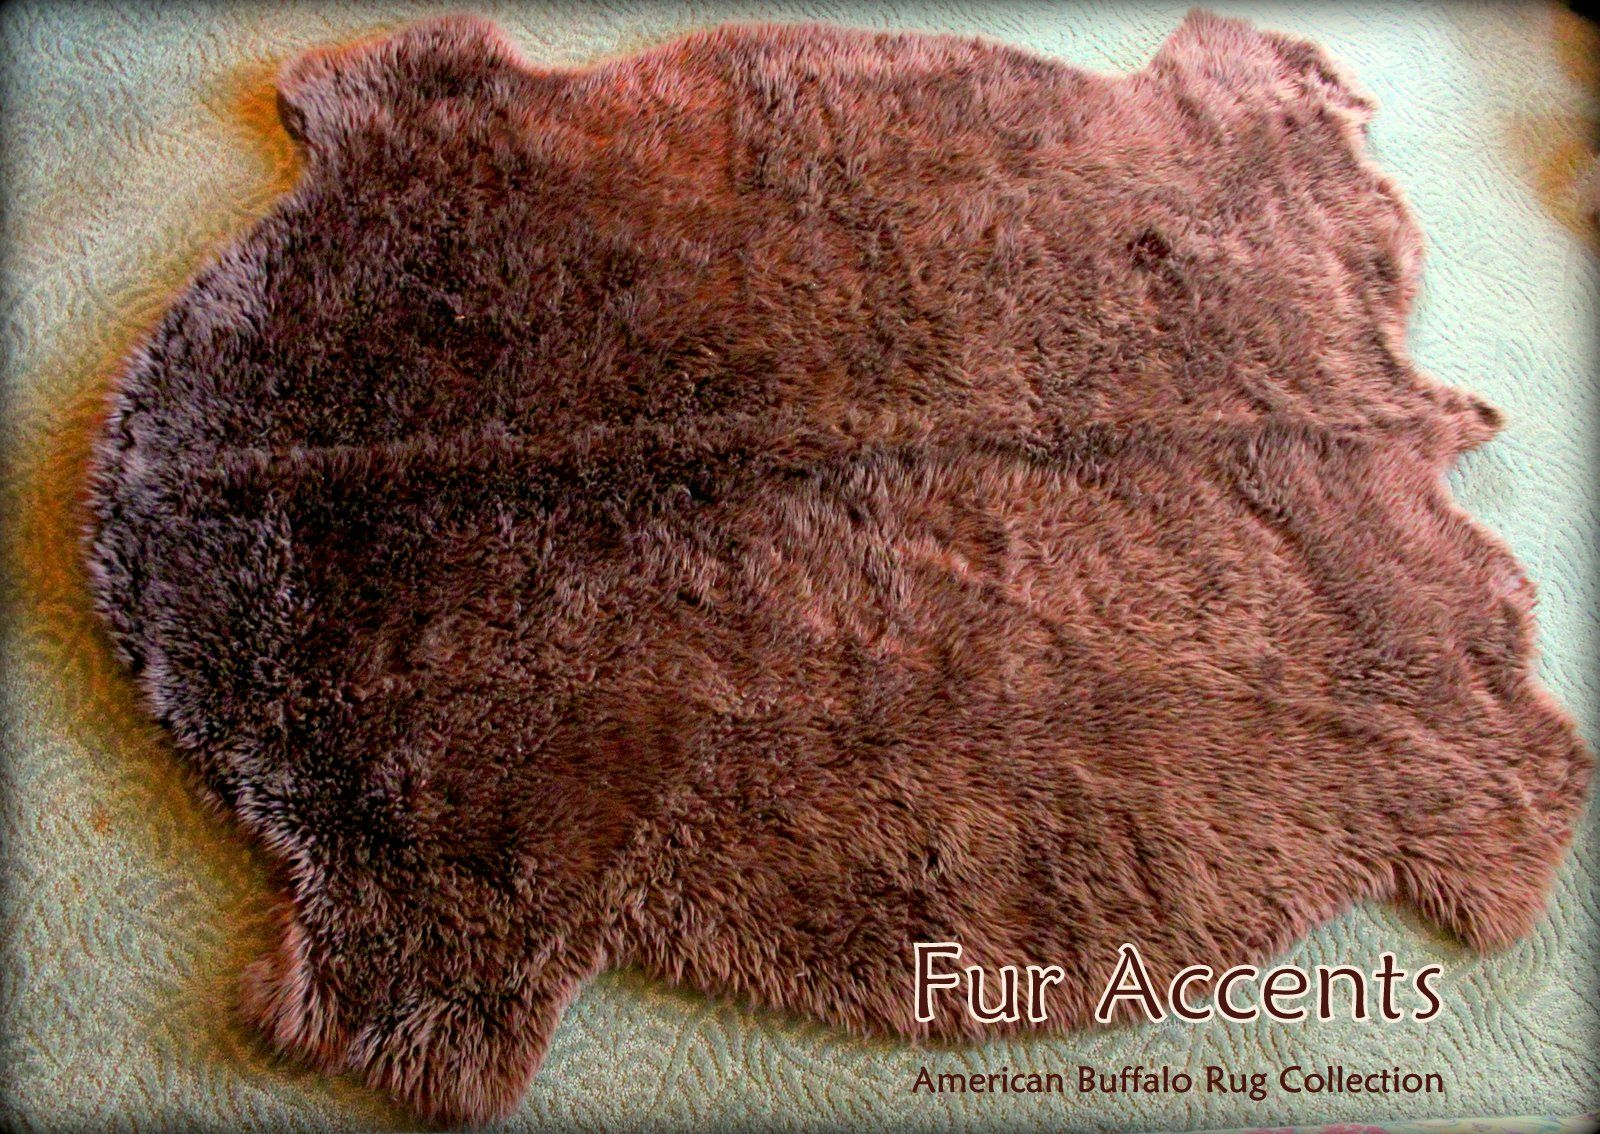 From The Buffalo Collection This Brown Buffalo Hide Pelt Rug Is Stunning And Its Faux Be Kind To Animals Always Buy Faux T Pelt Rugs Faux Fur Rug Animal Free